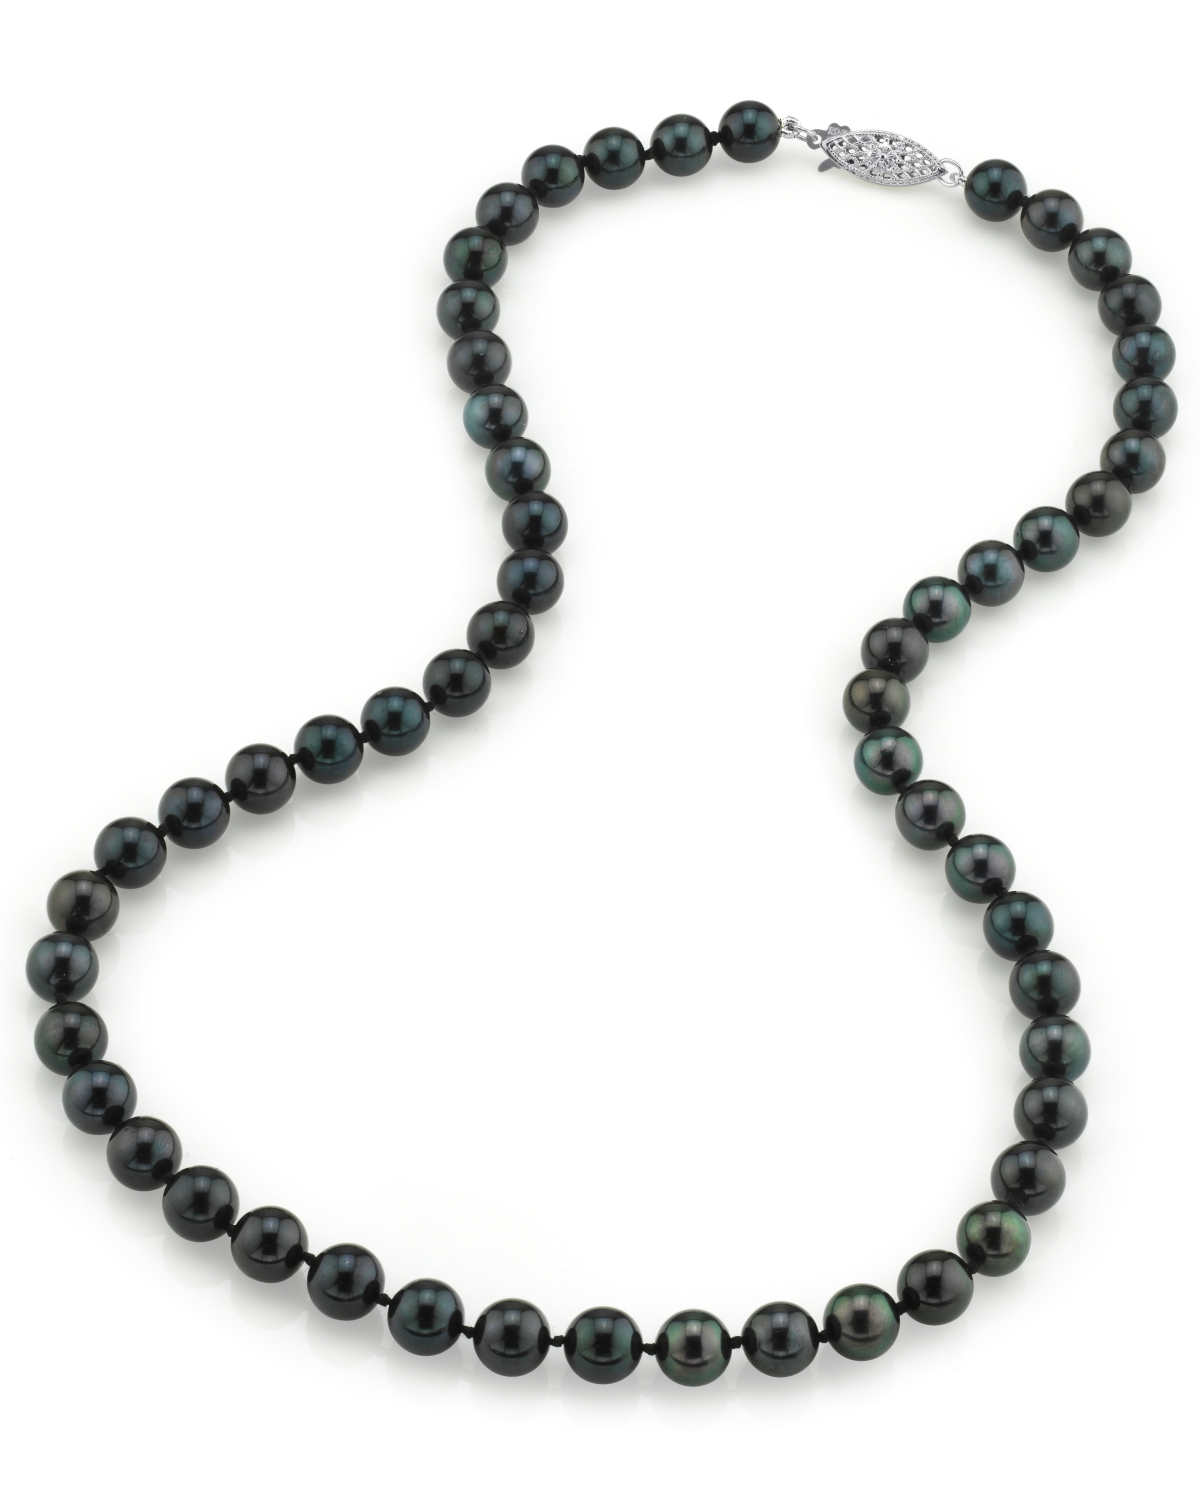 7.0-7.5mm Japanese Akoya Black Pearl Necklace- AA+ Quality